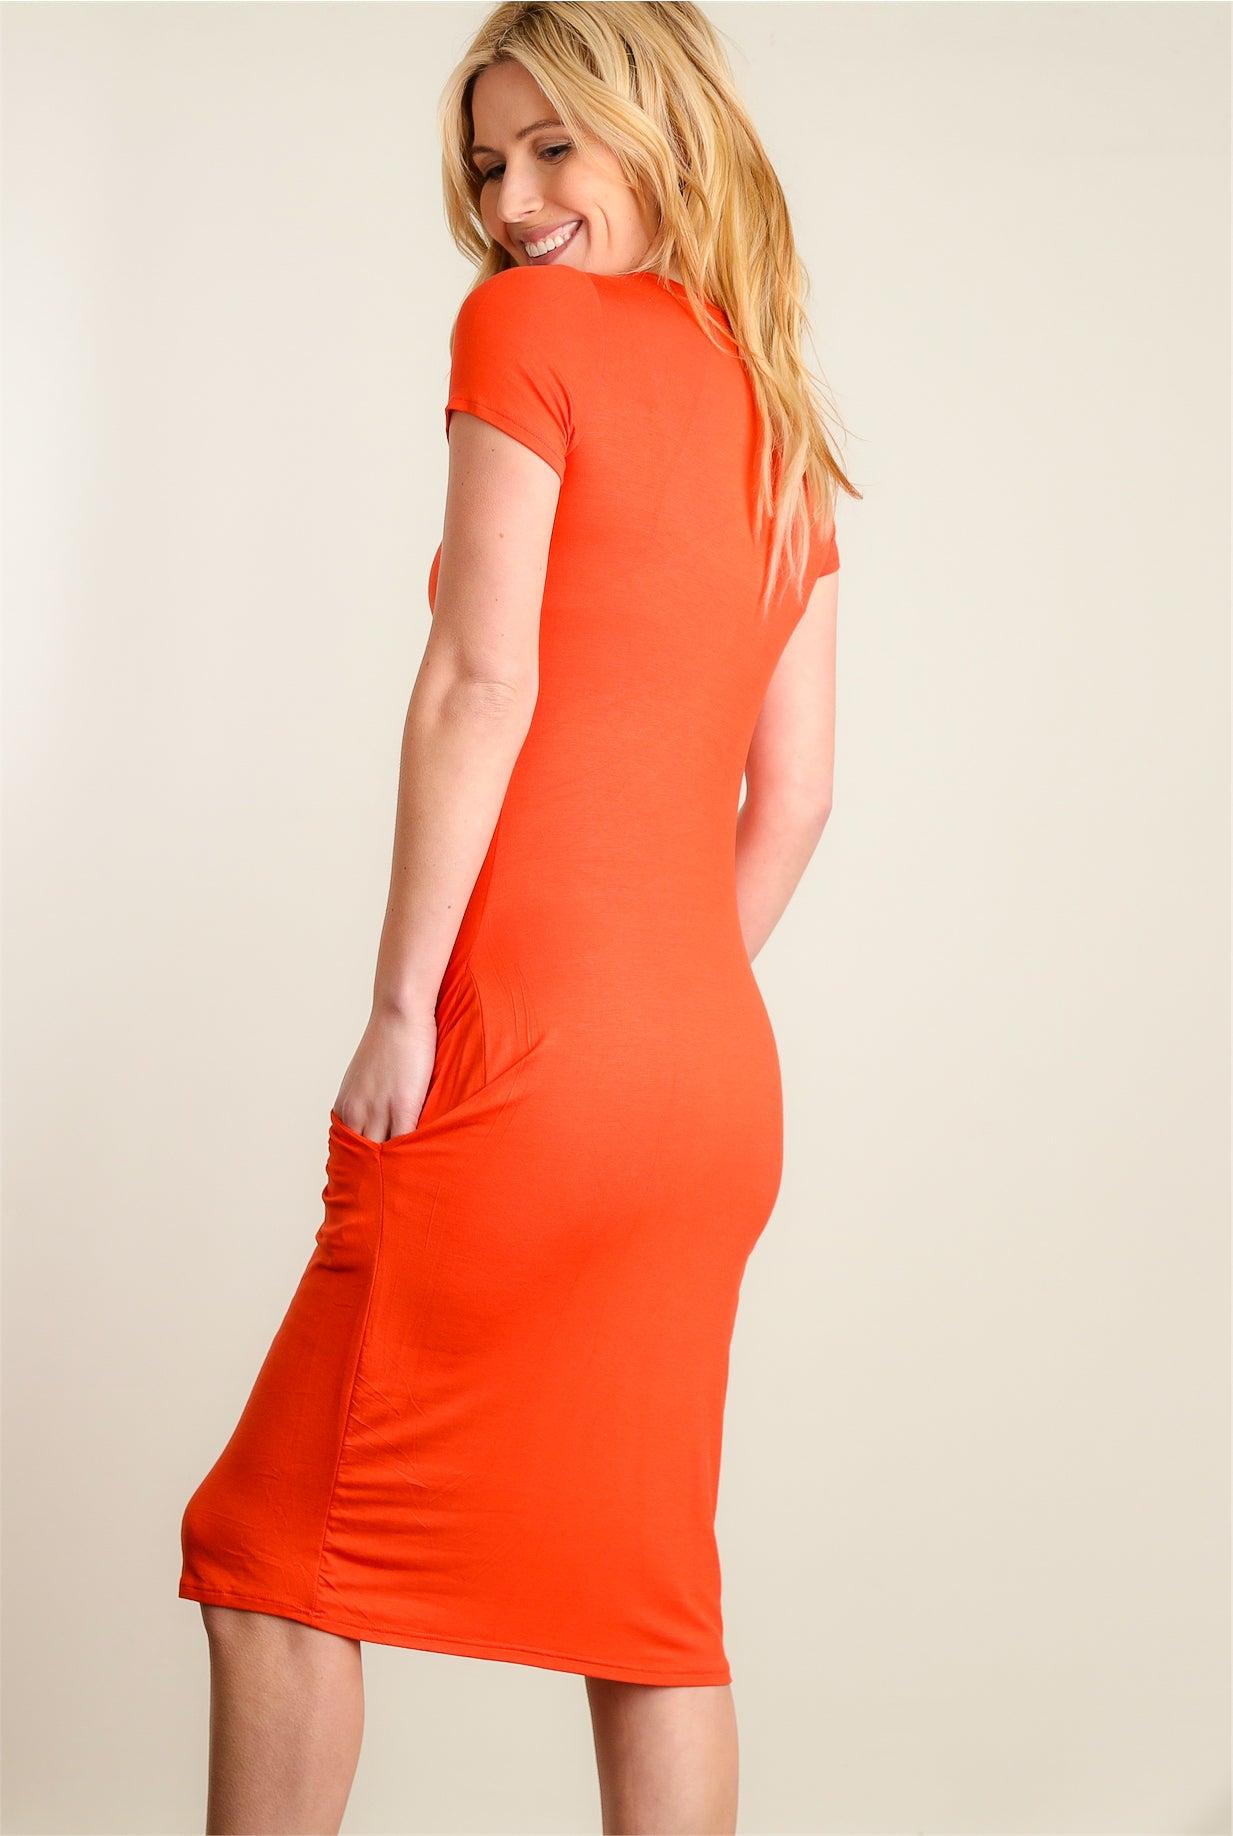 Coral Pocketed Dress